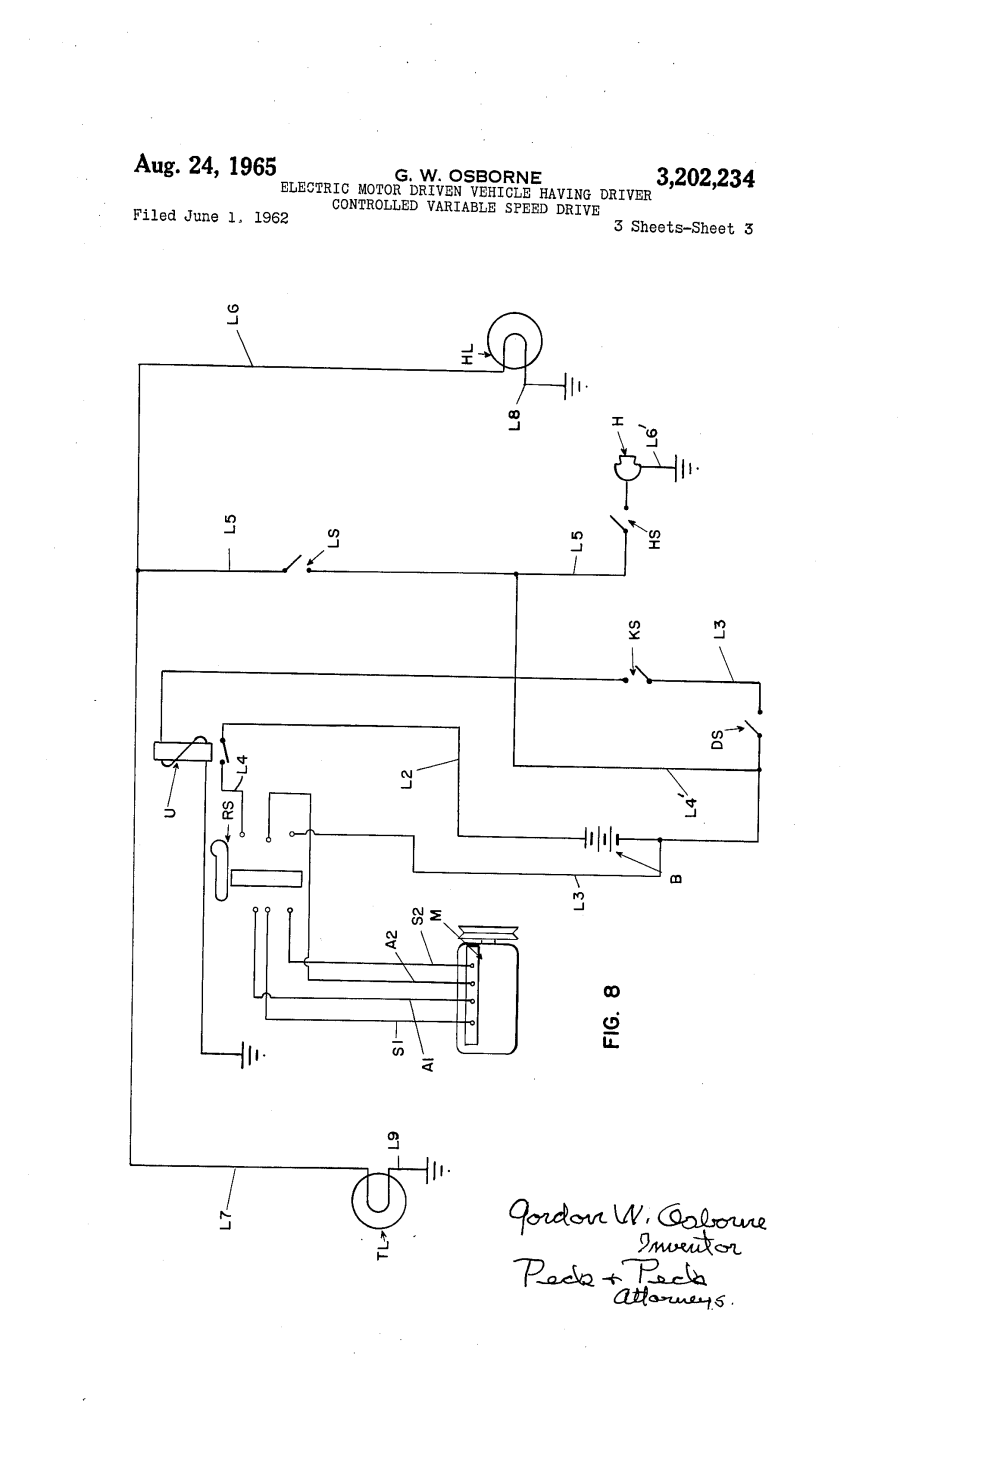 medium resolution of patent us3202234 electric motor driven vehicle having driver patent drawing variable sd electric motor wiring diagram